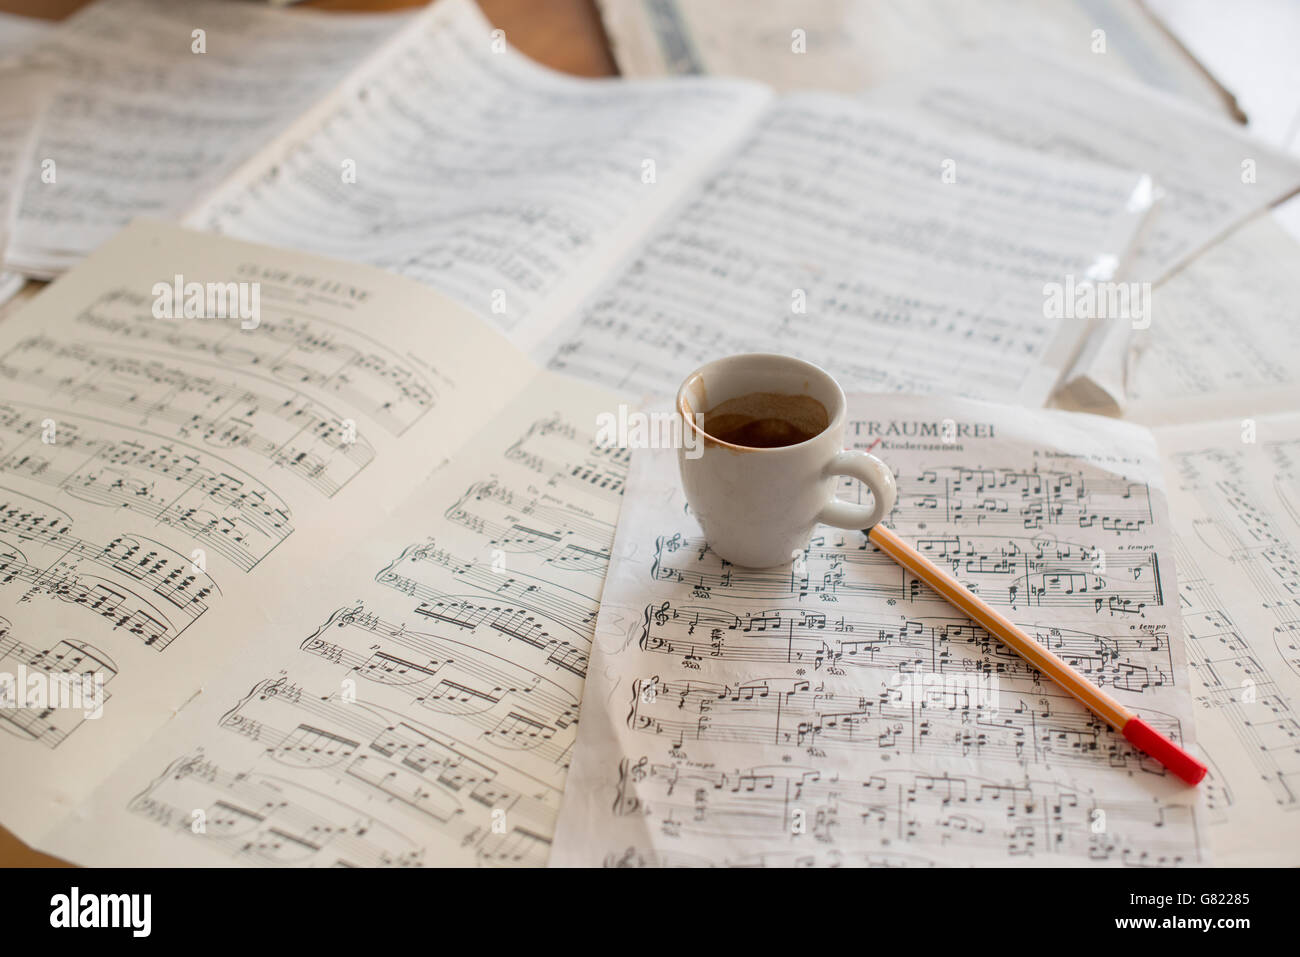 Strong coffee and music score on musicians desk - Stock Image